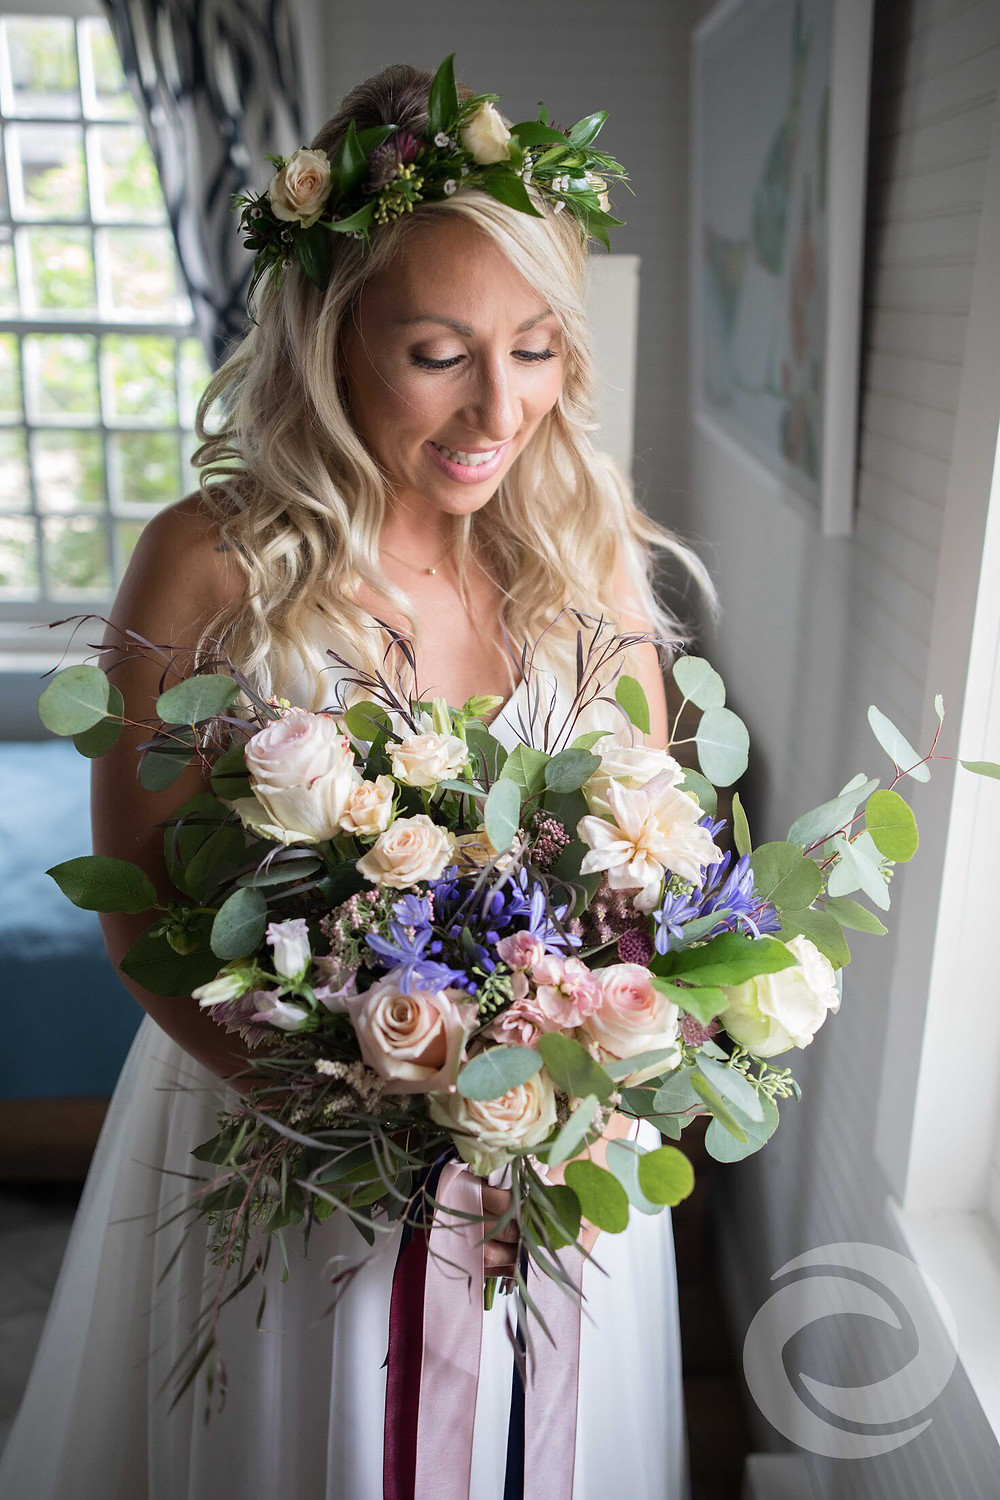 Bride with Blush bridal bouquet and flower crown